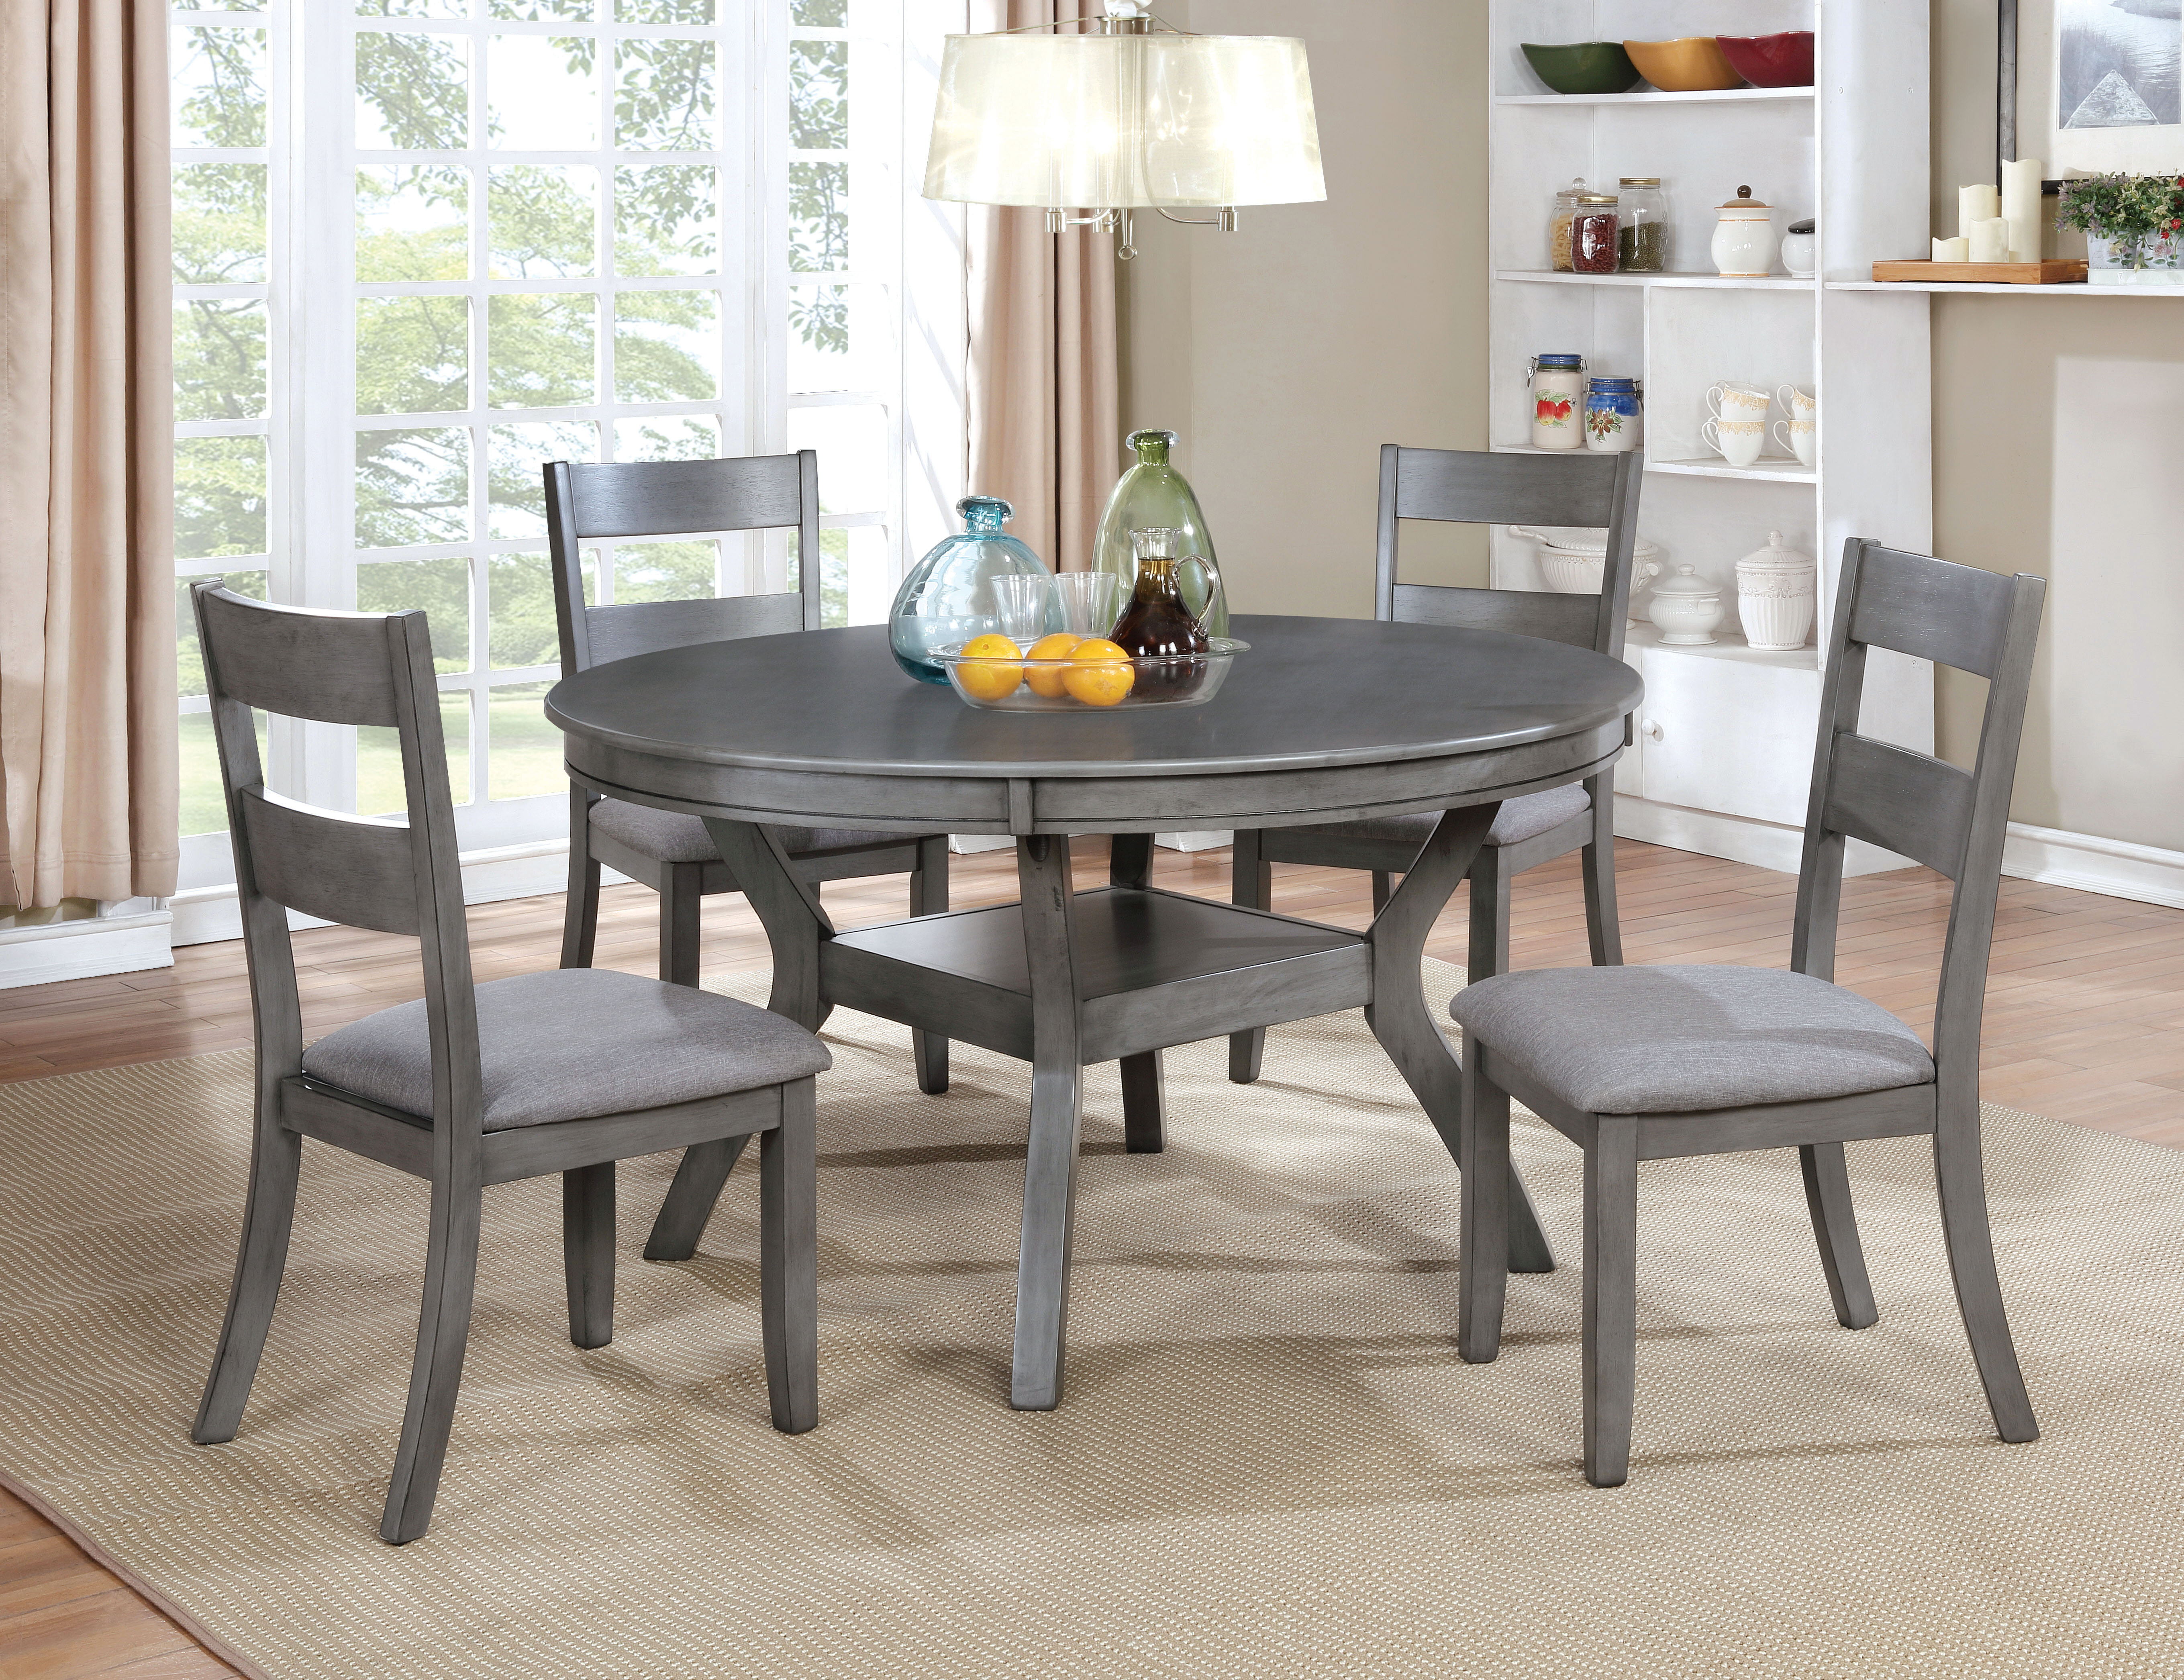 Birch Seats 6 Kitchen Dining Room Sets You Ll Love In 2021 Wayfair